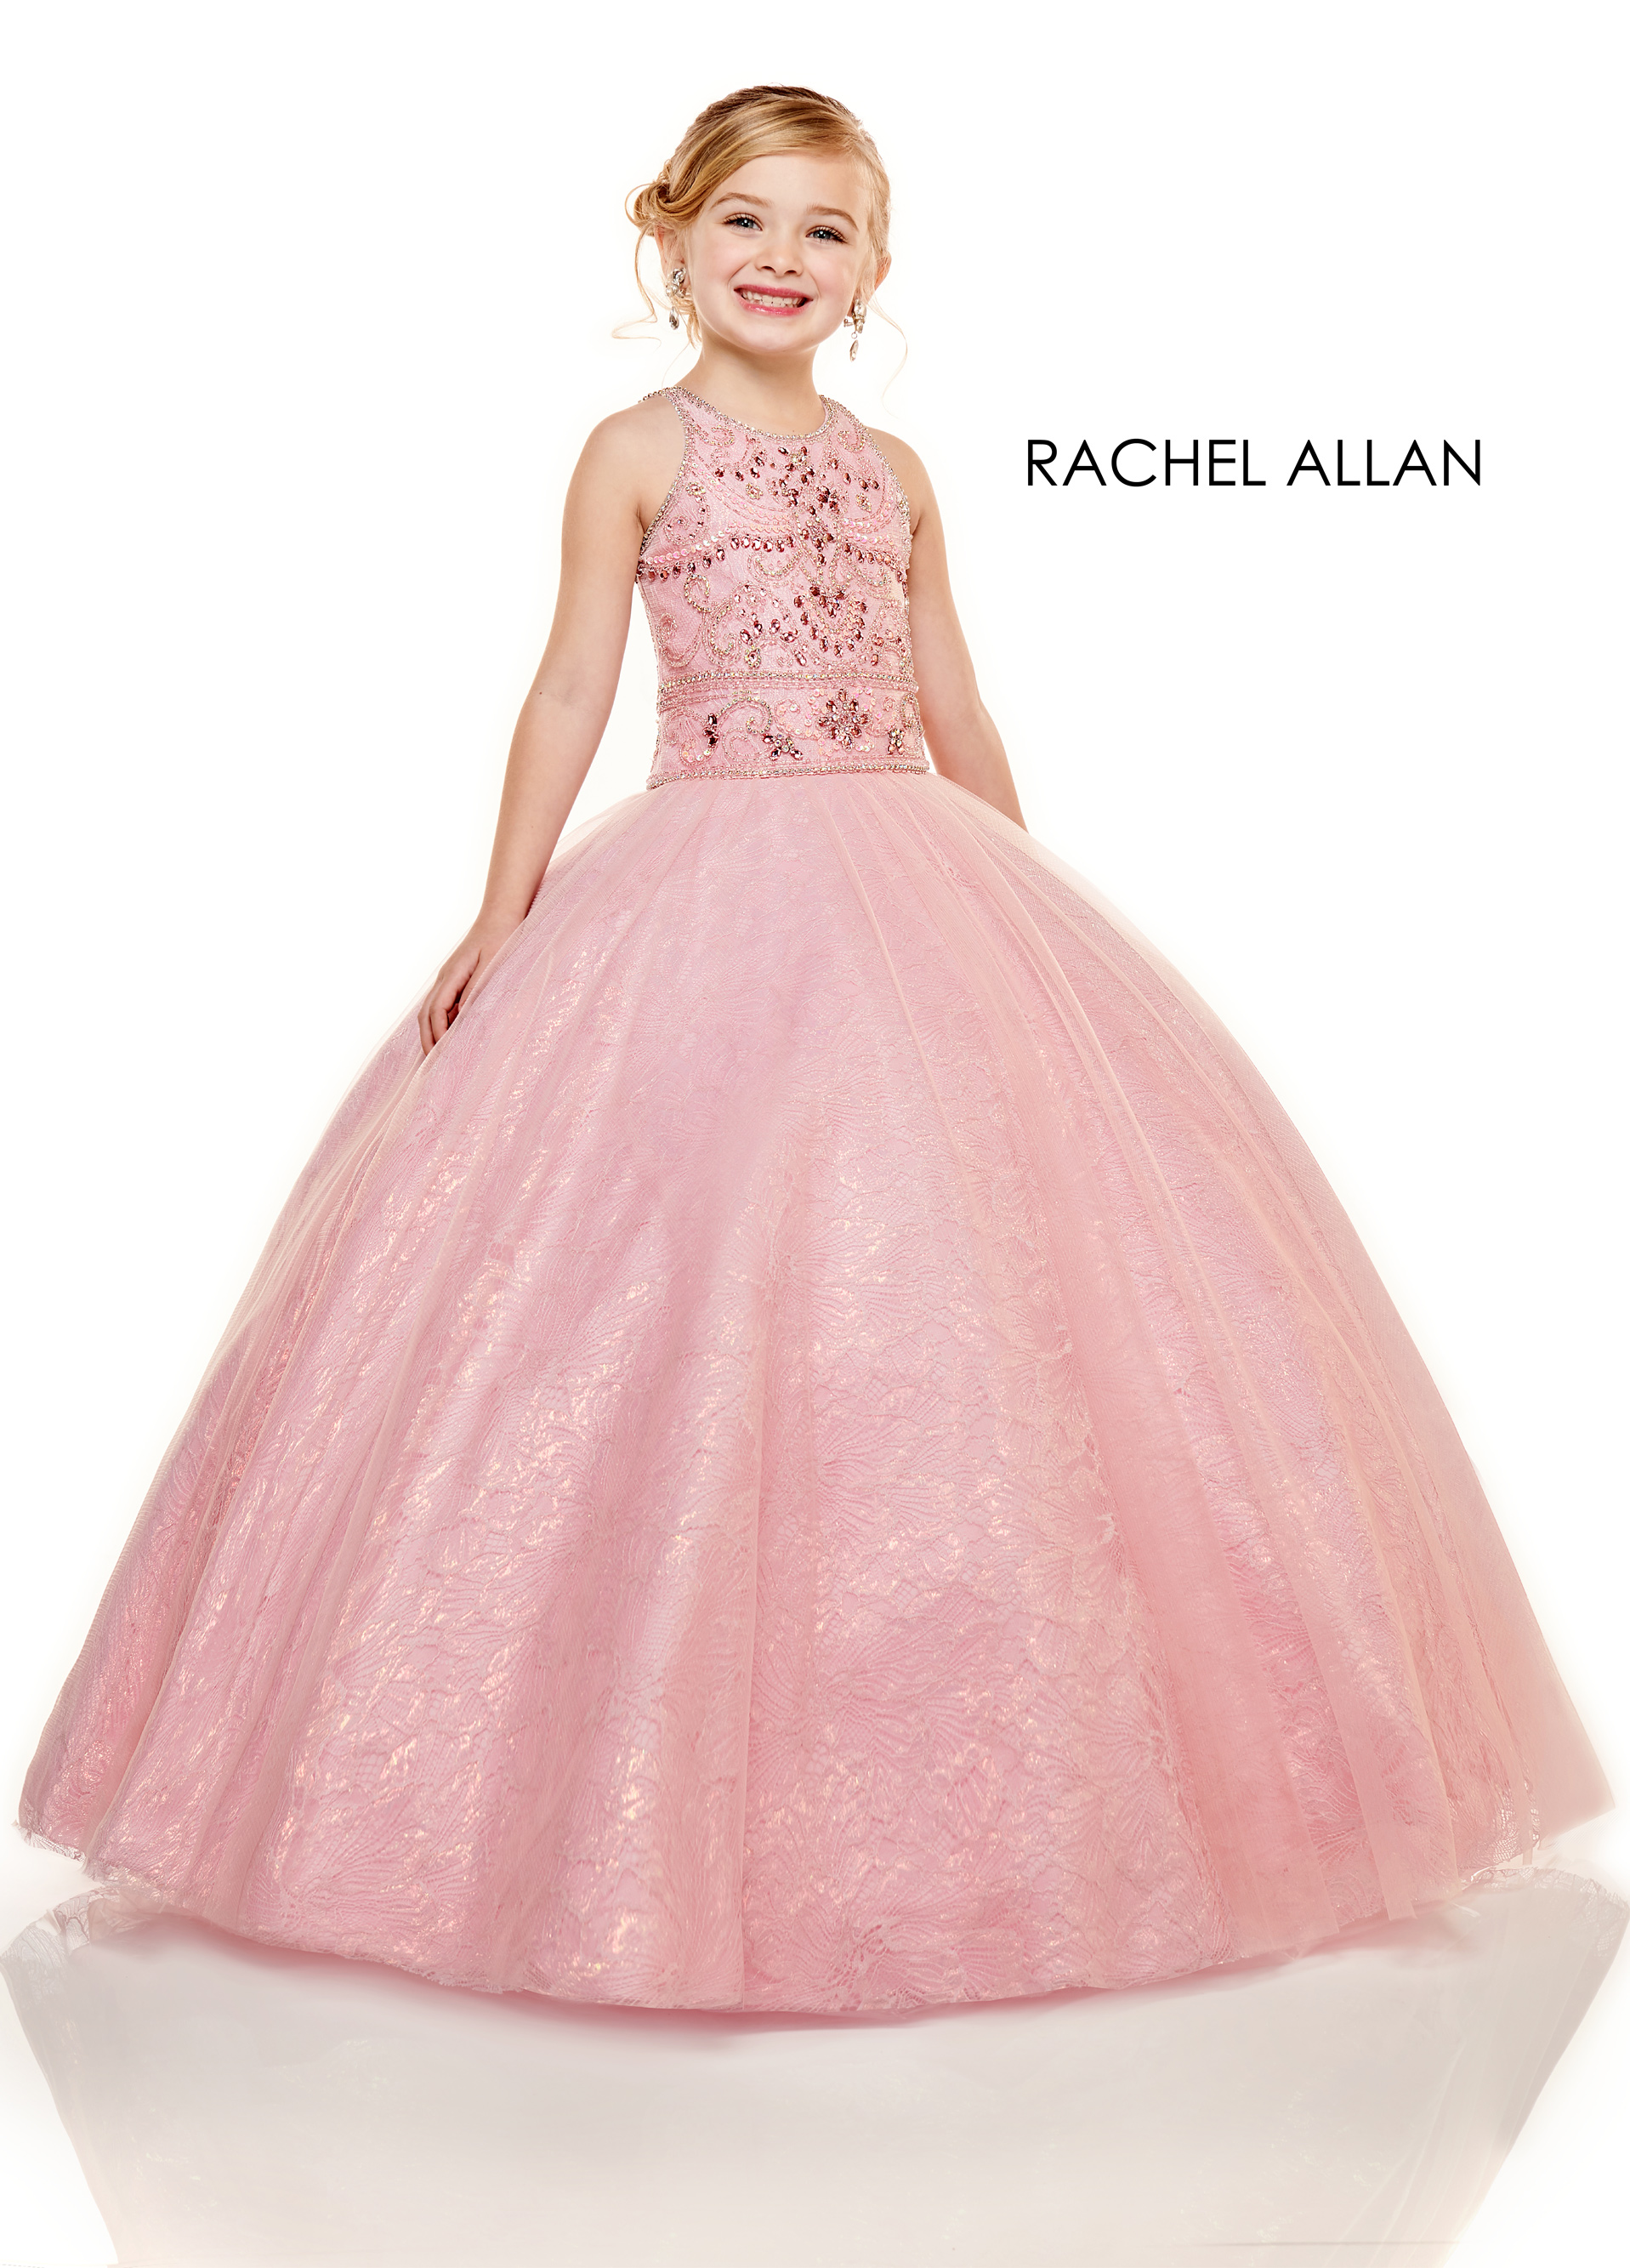 High Neckline Ball Gowns Little Girl Pageant Dresses in Pink Color